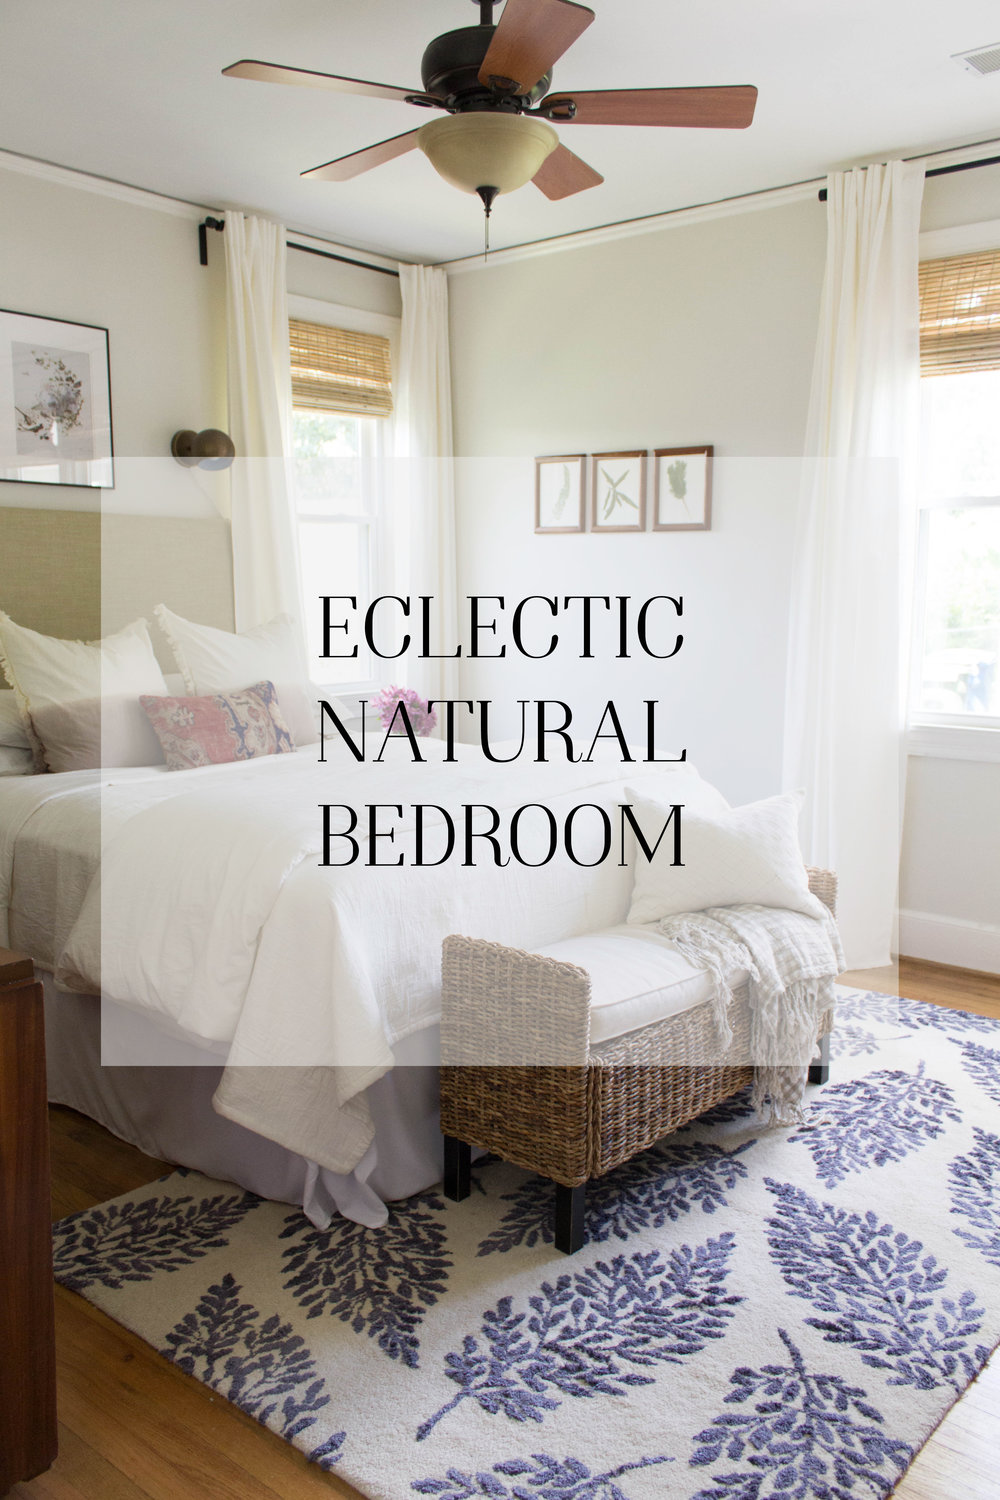 Love this eclectic bedroom!